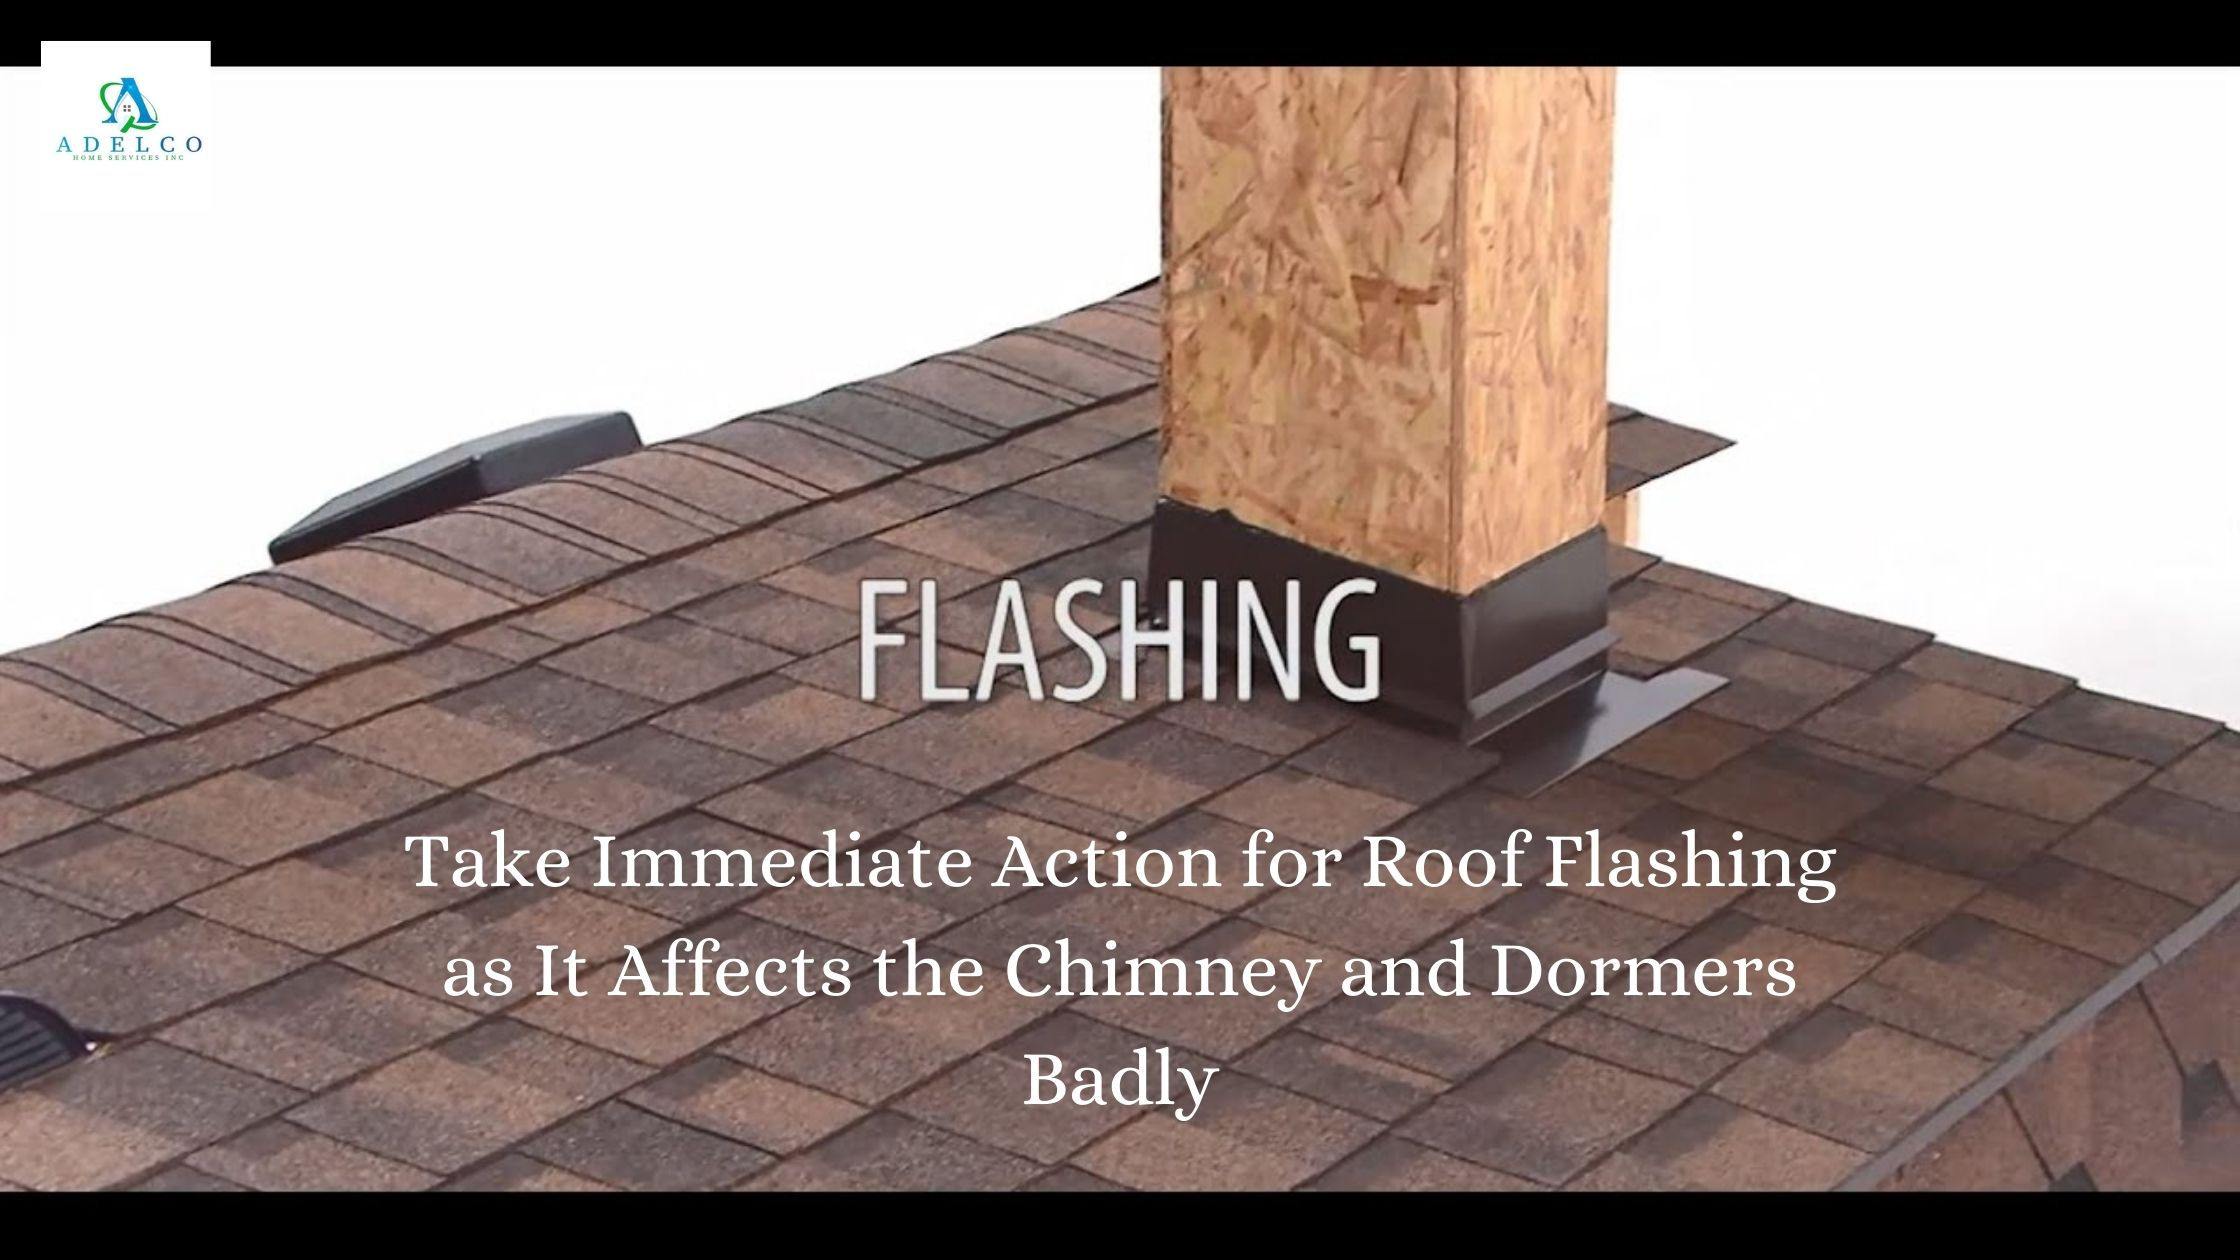 Take Immediate Action for Roof Flashing